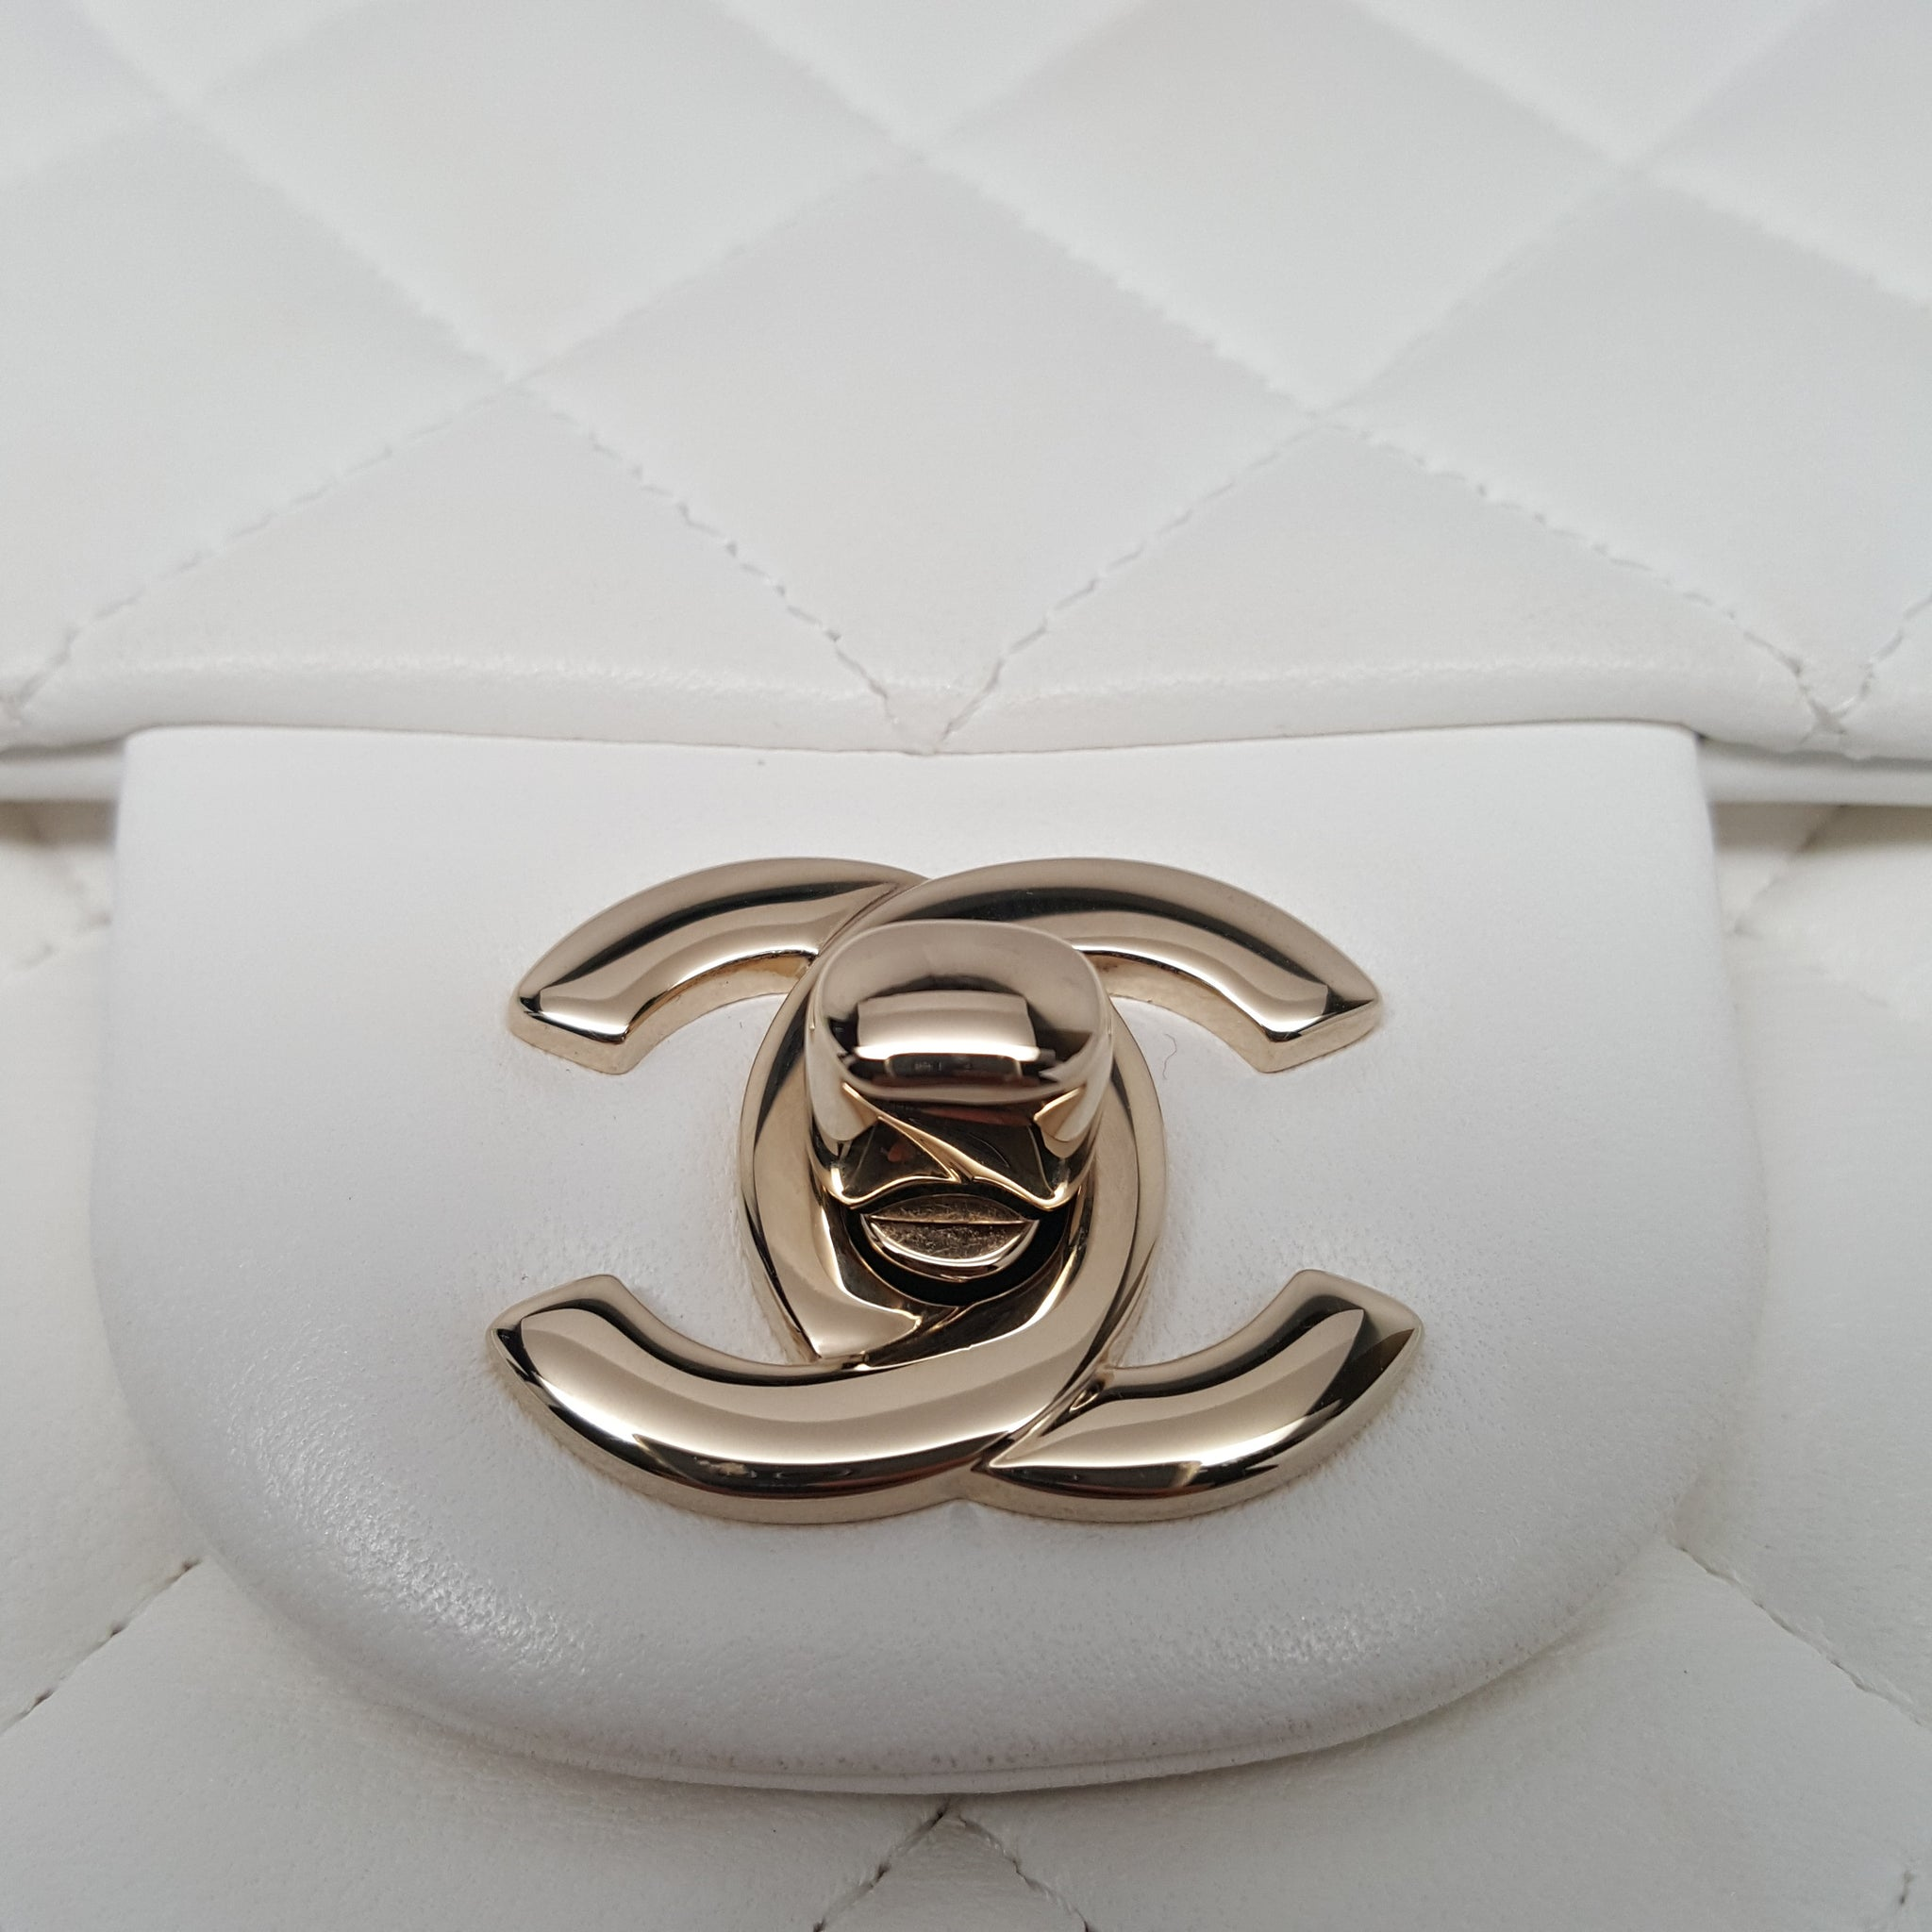 CHANEL CLASSIC OFF-WHITE QUILTED LAMBSKIN MINI FLAP BAG